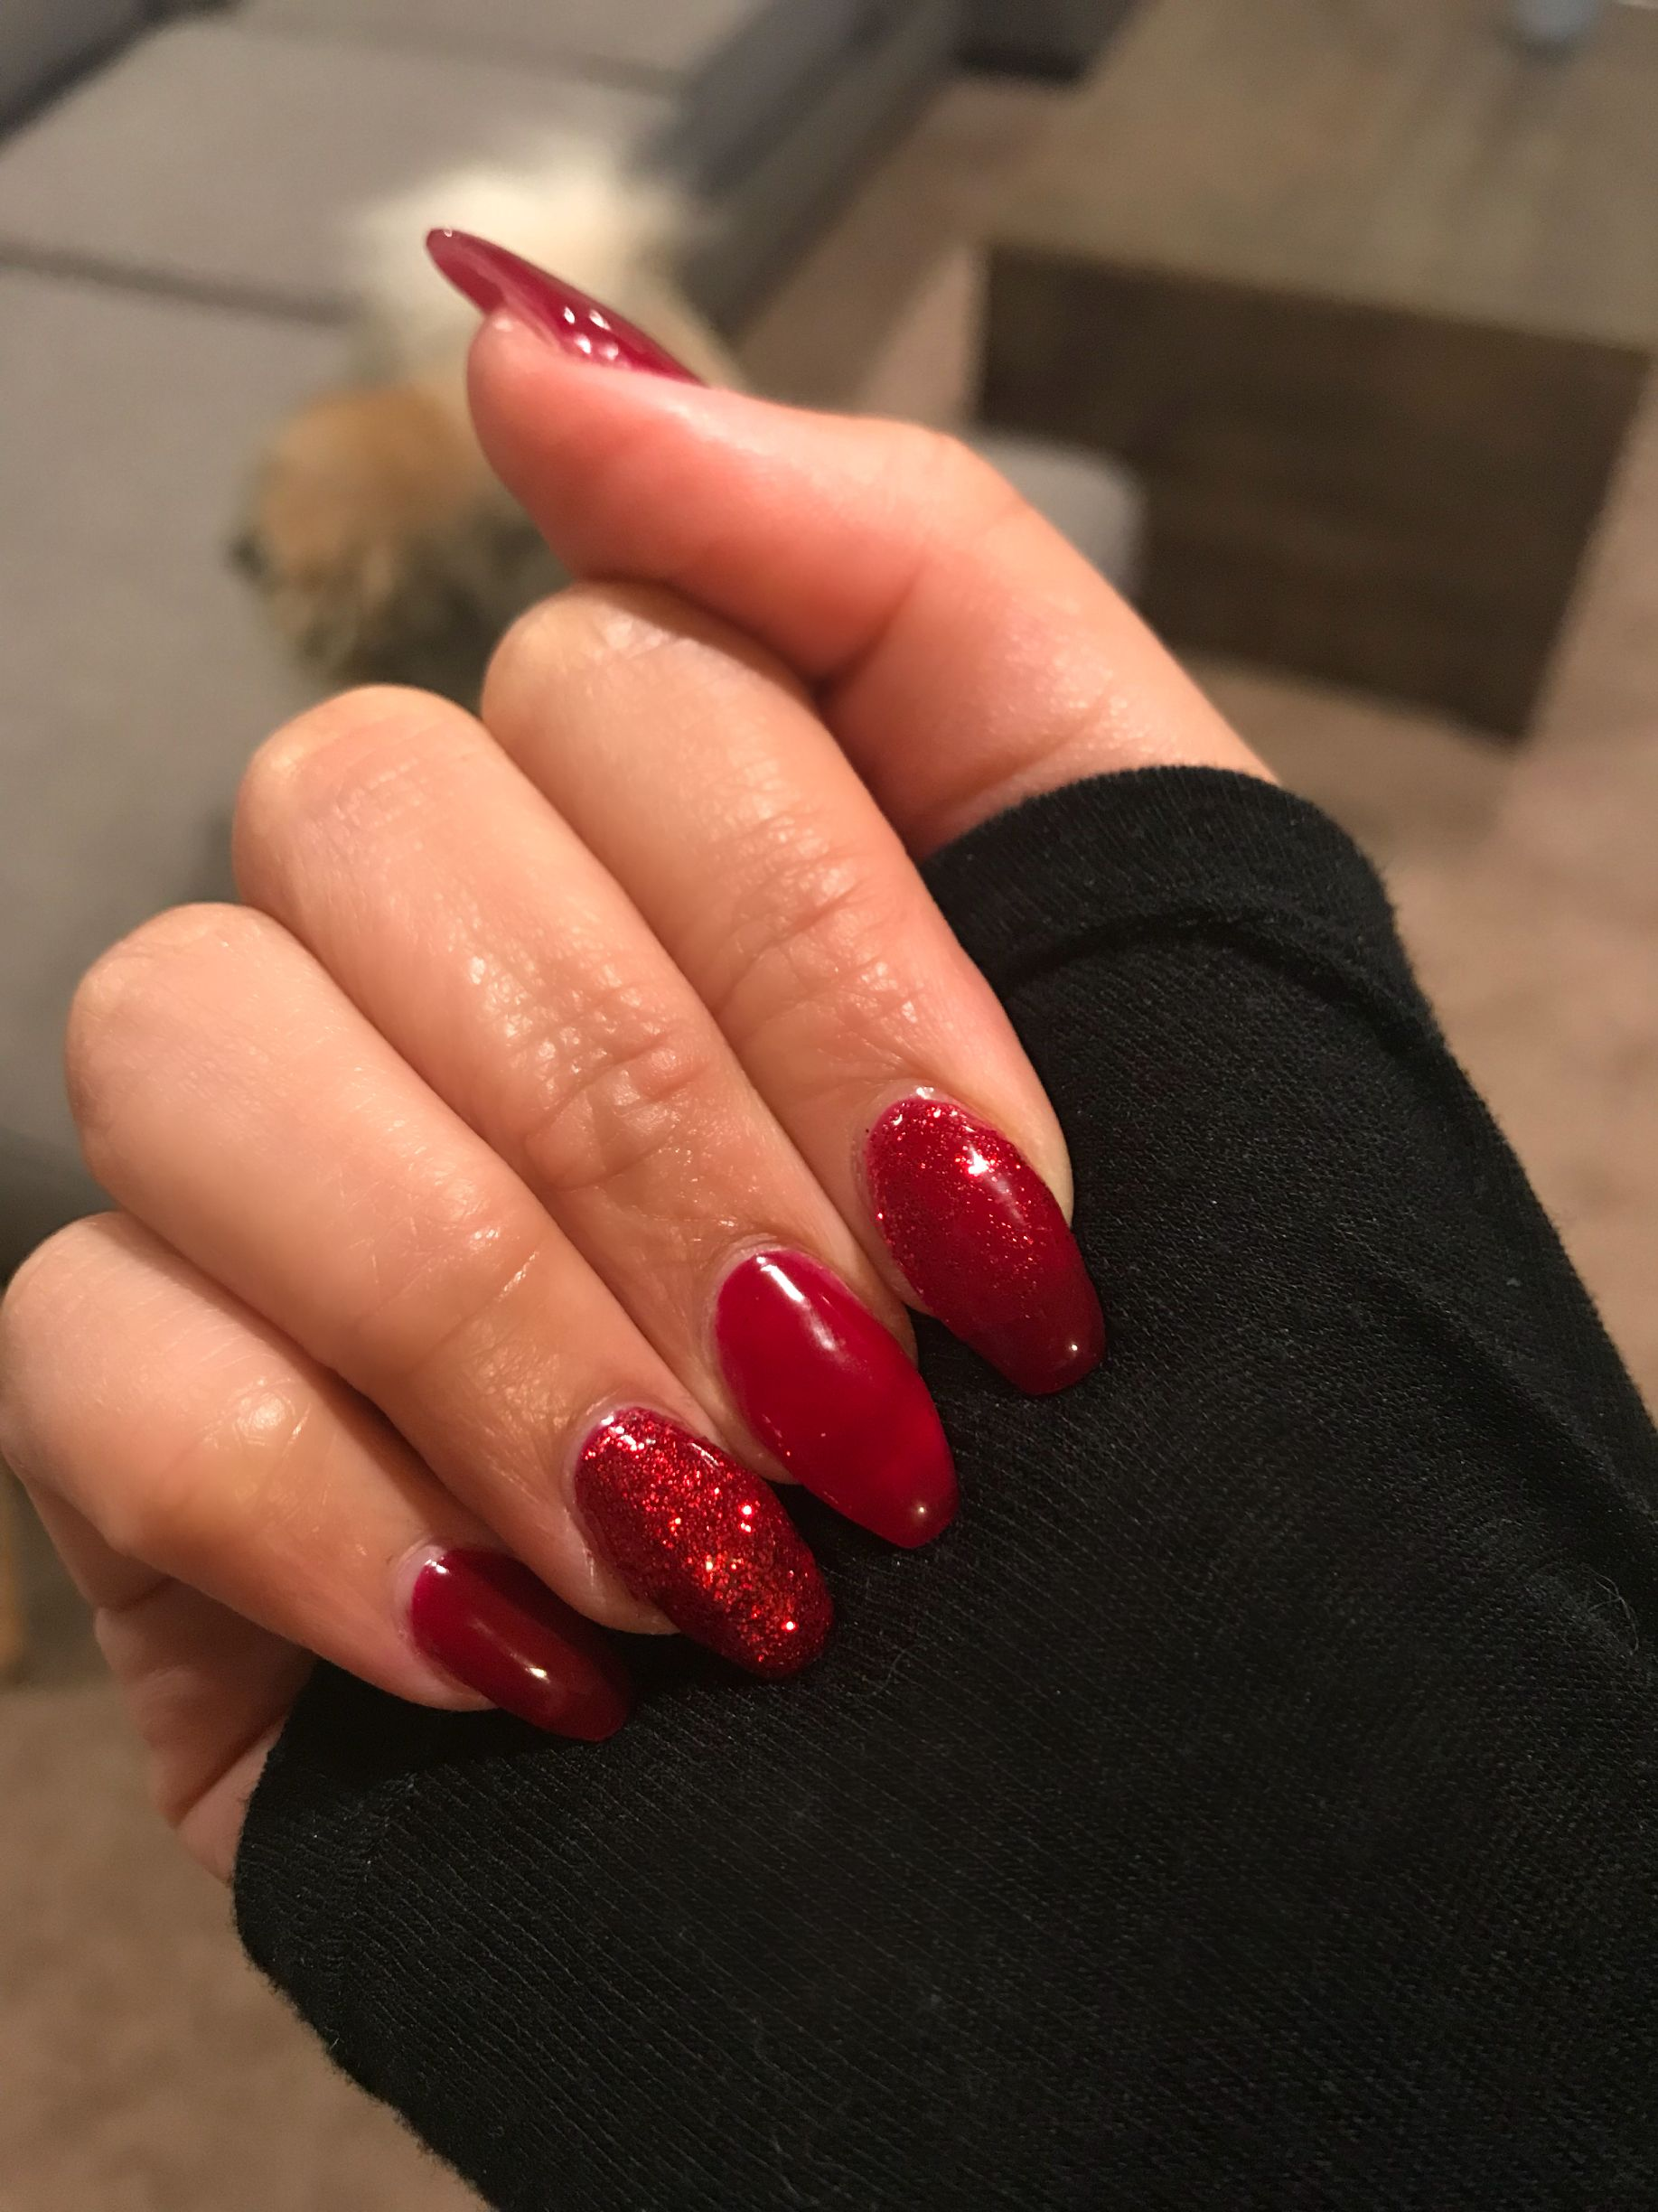 DIY UV Gel Nail Extensions In Bordeaux By Essie Red Glitter